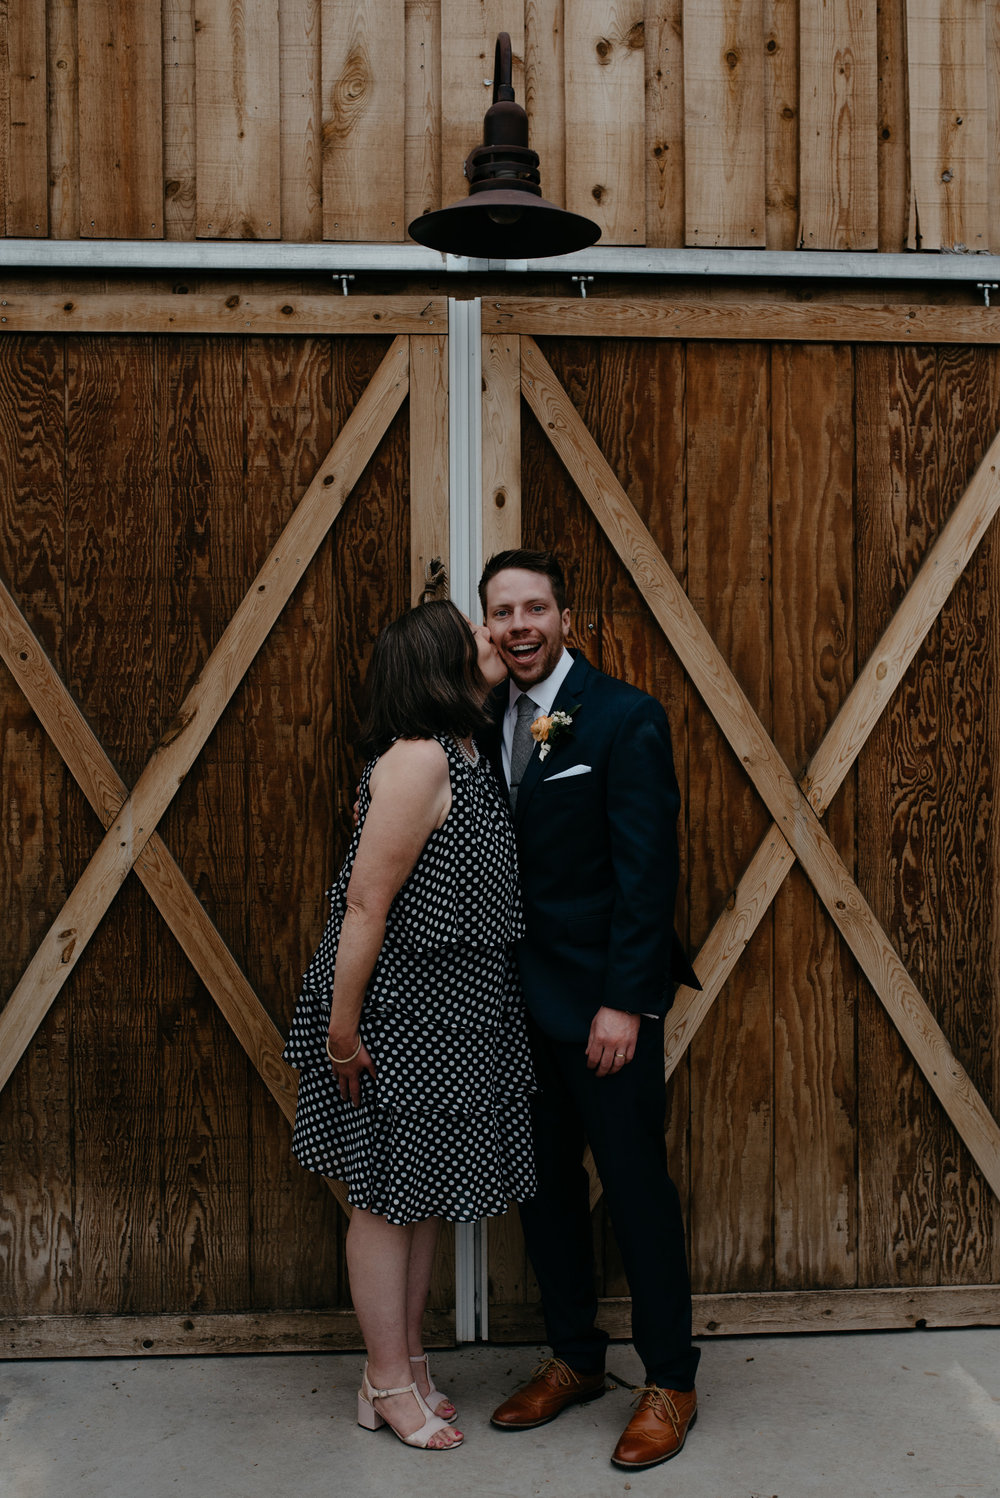 Family formals at Boulder wedding. Colorado wedding and elopement photographer.